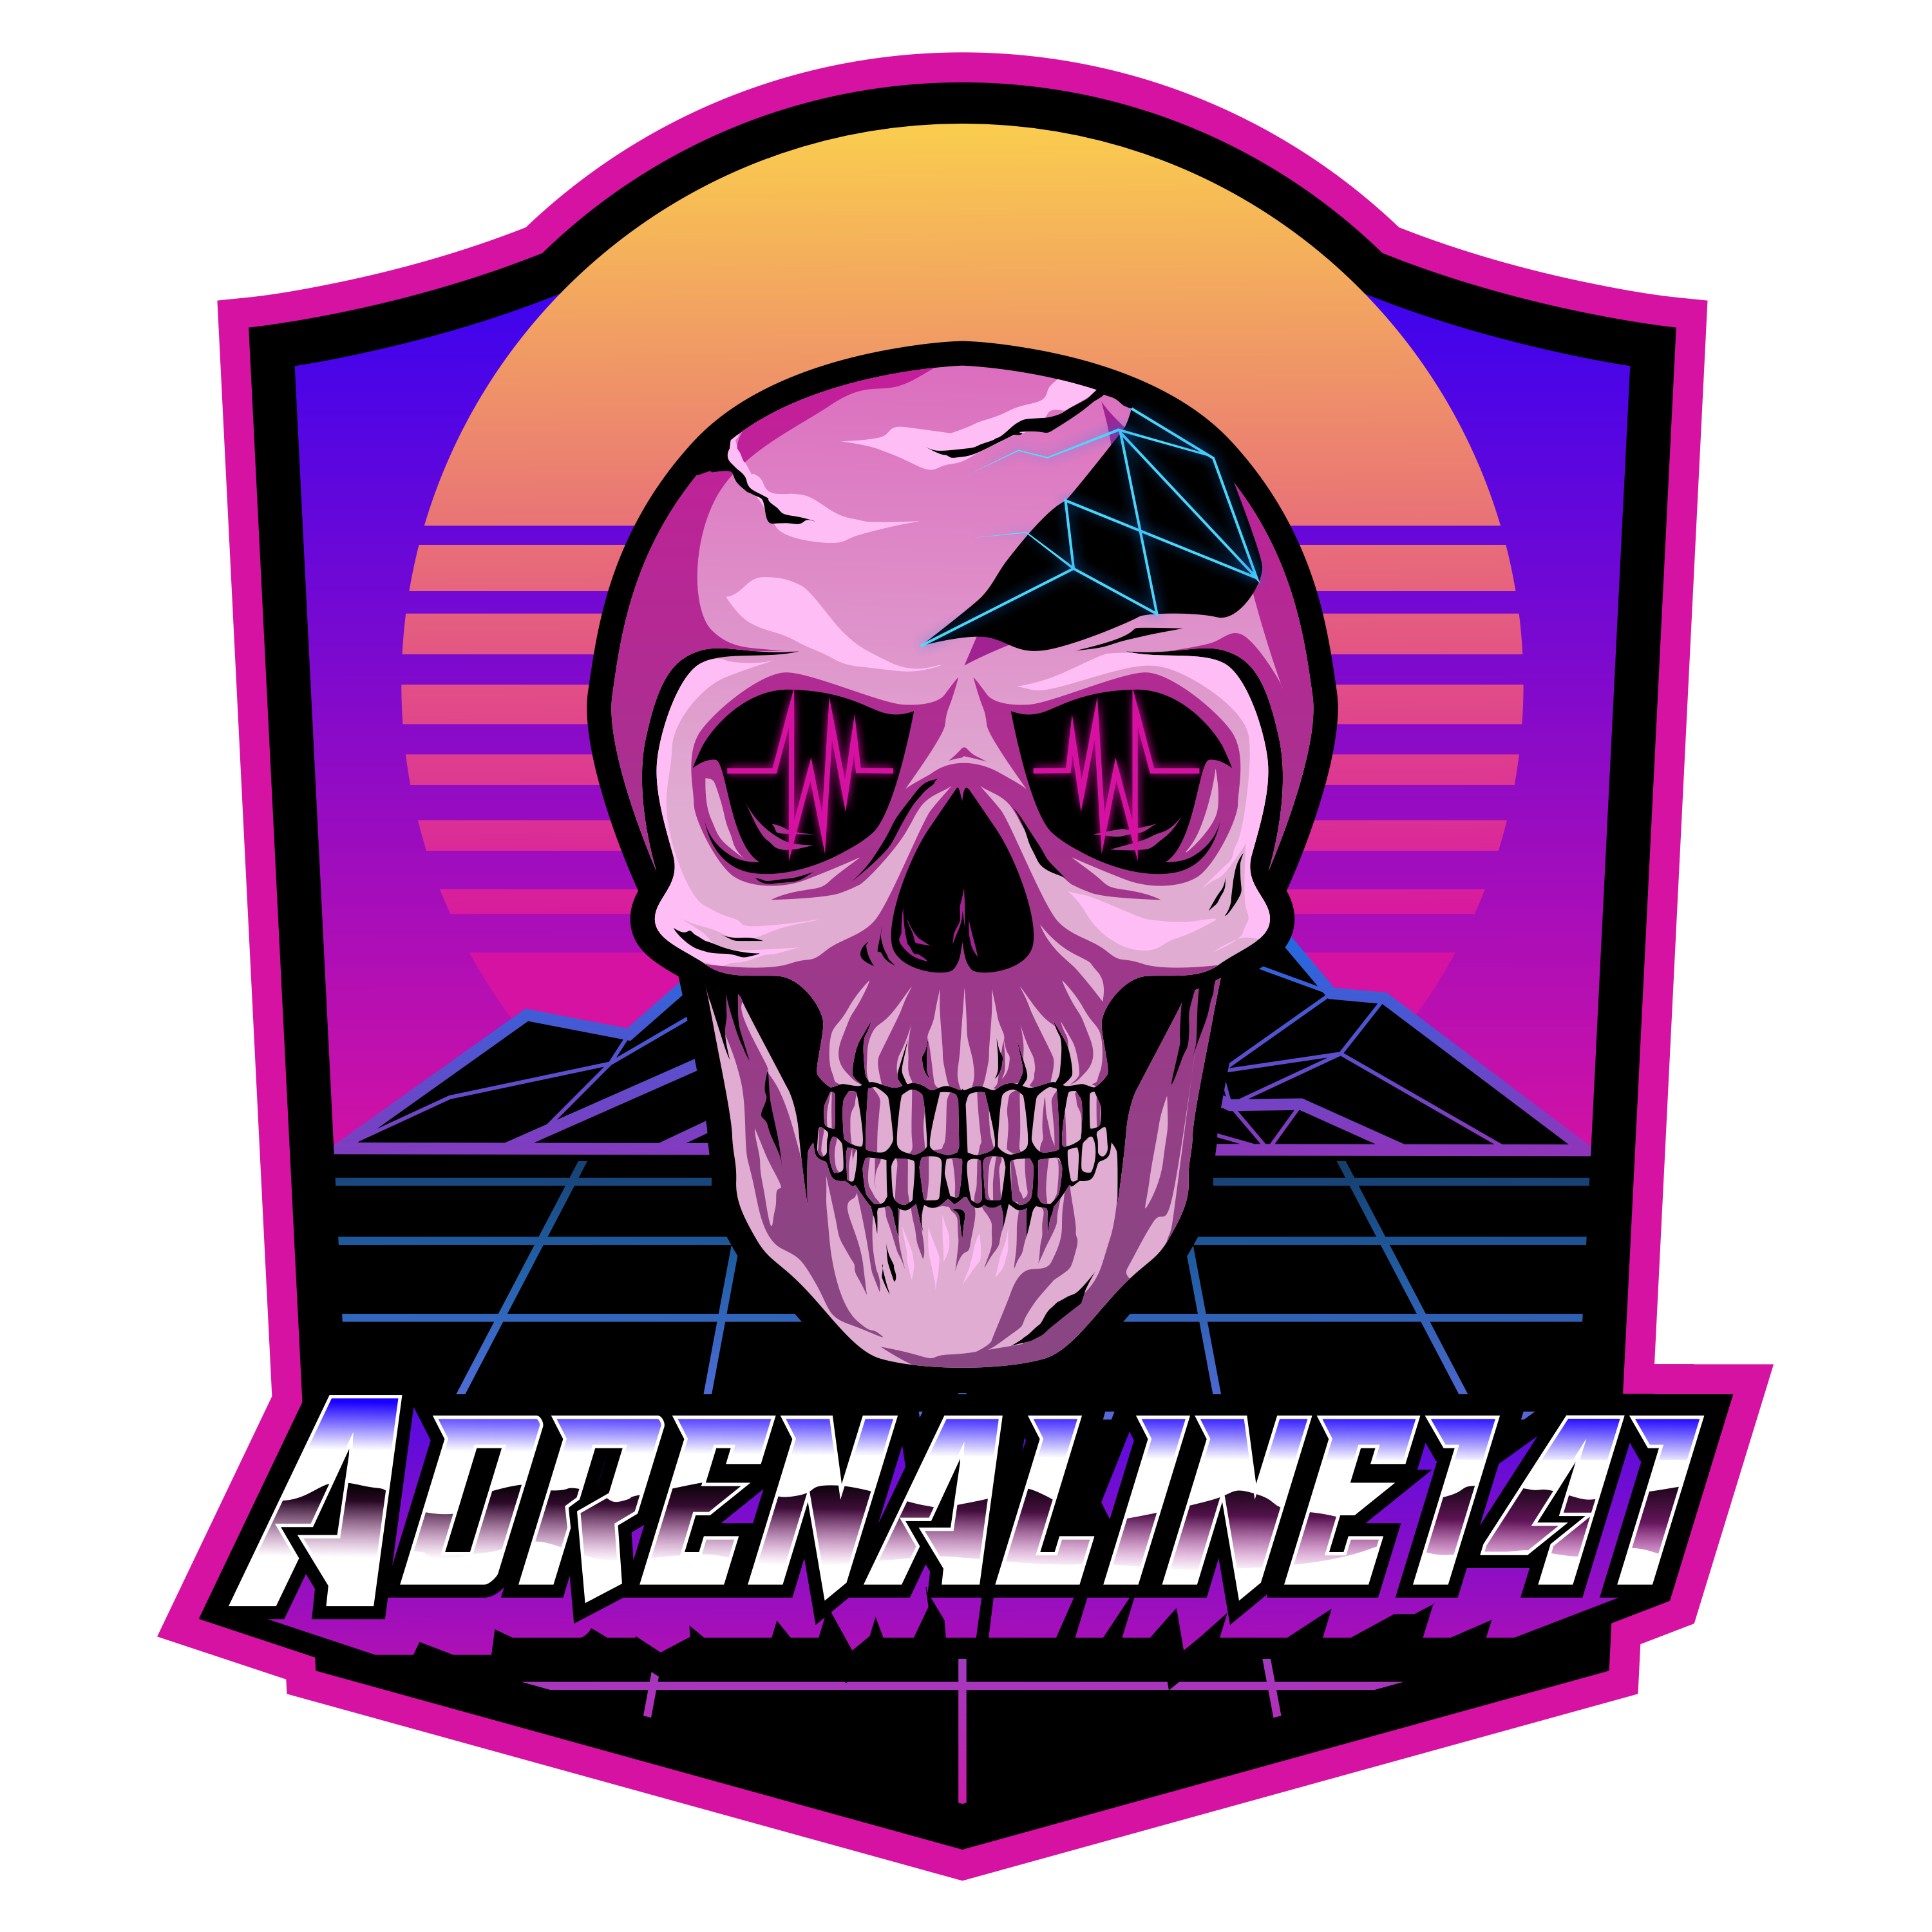 Adrenaline141 Gaming Logo Review